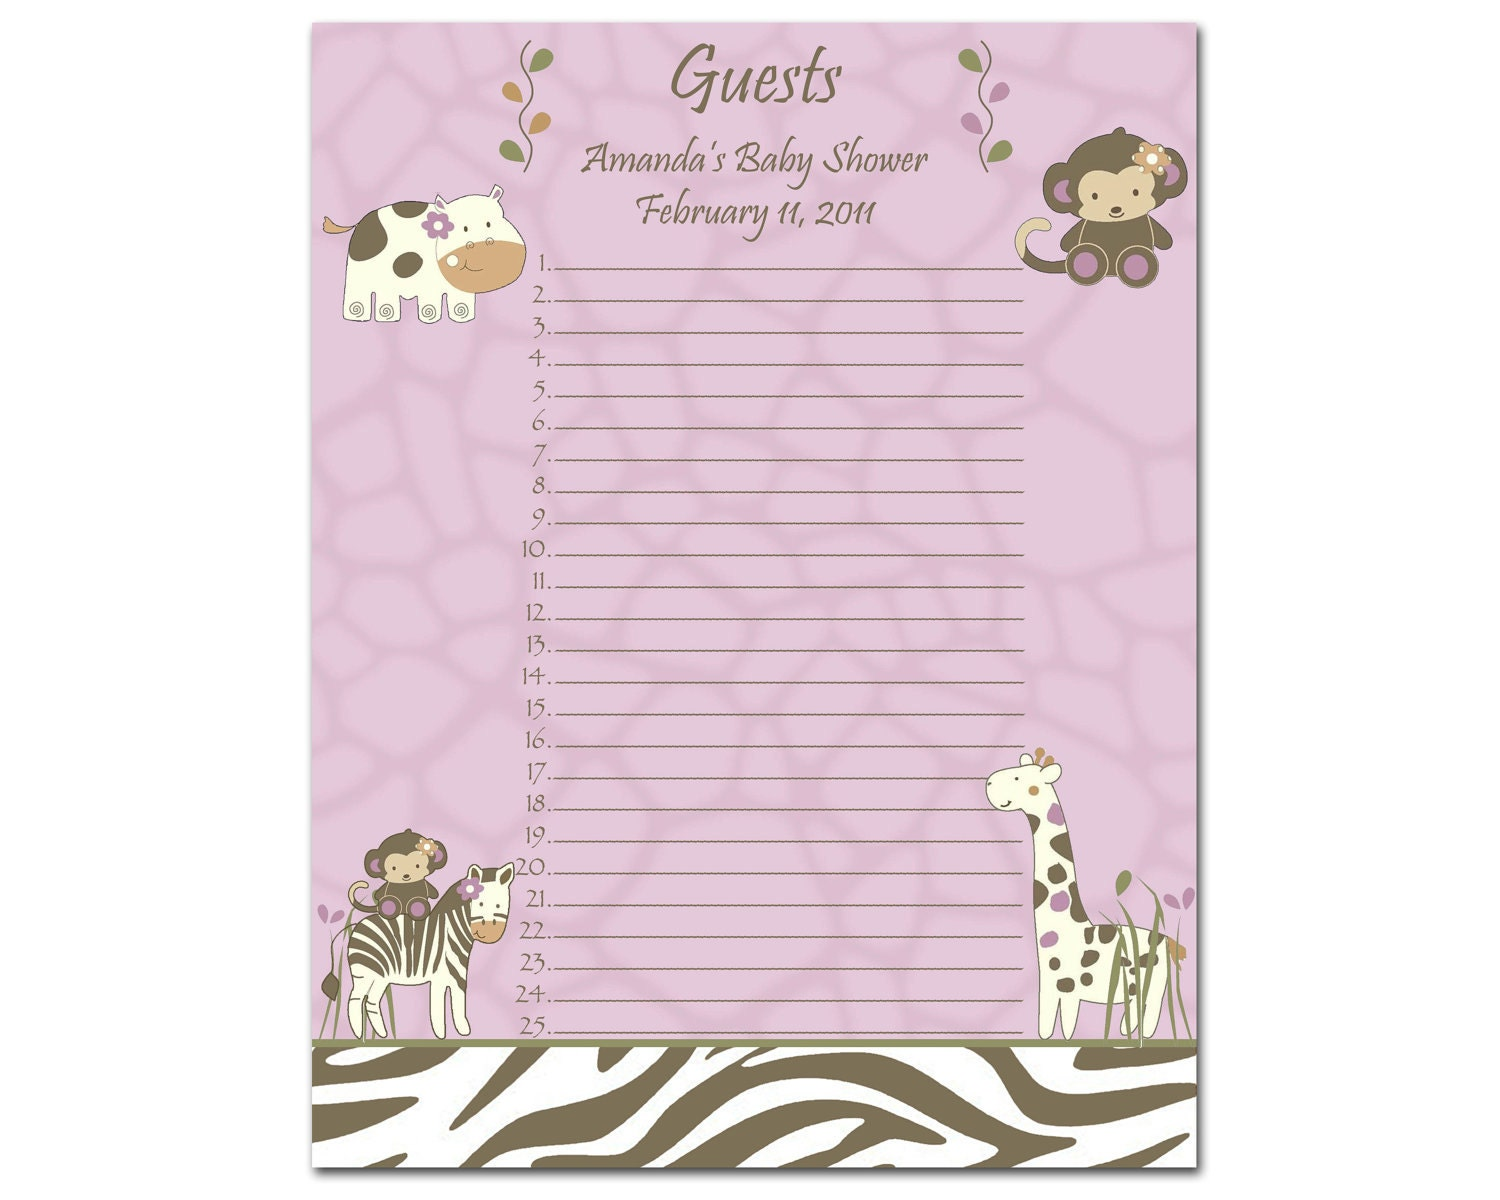 Wedding Guest List Etsy baby shower gift list printable – Printable Guest List Template